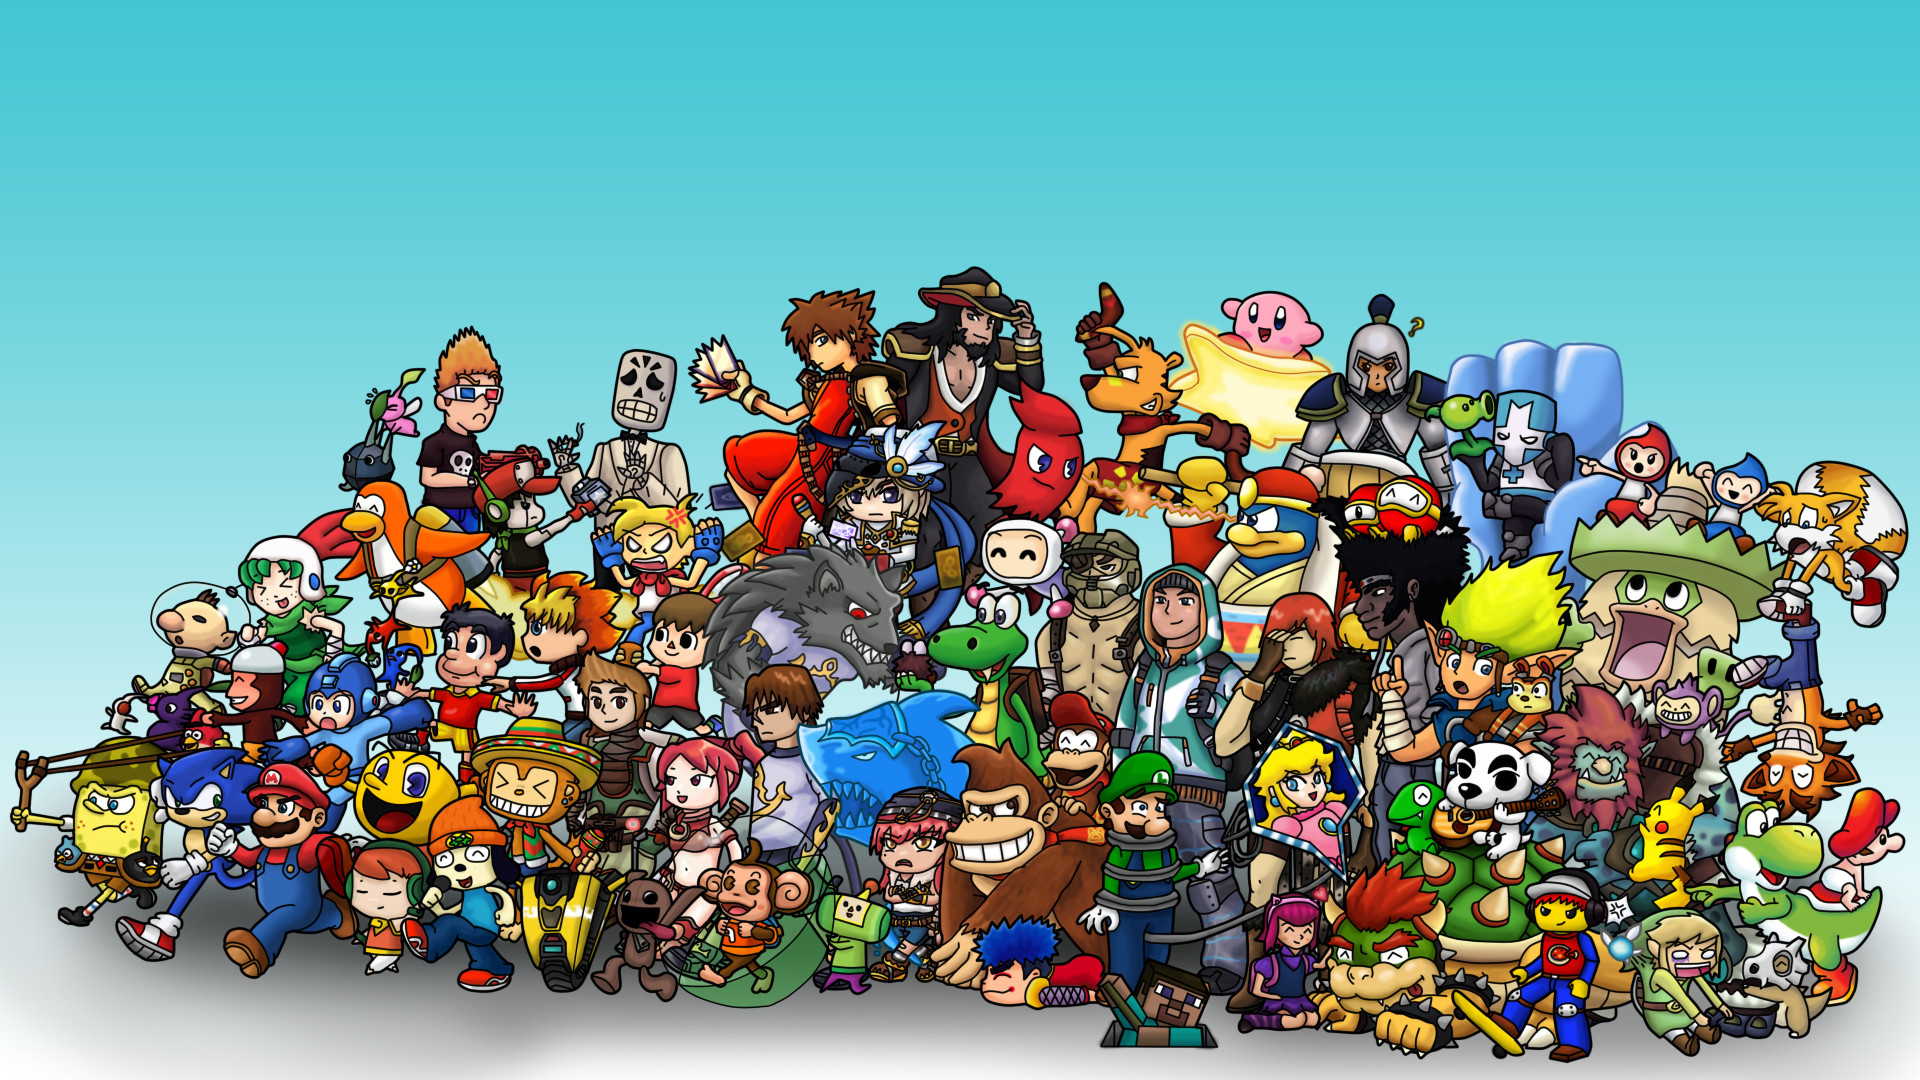 Video Game Wallpaper themes  66  images  1920x1080 video game wallpaper great name by obubblesmansion fan art  wallpaper